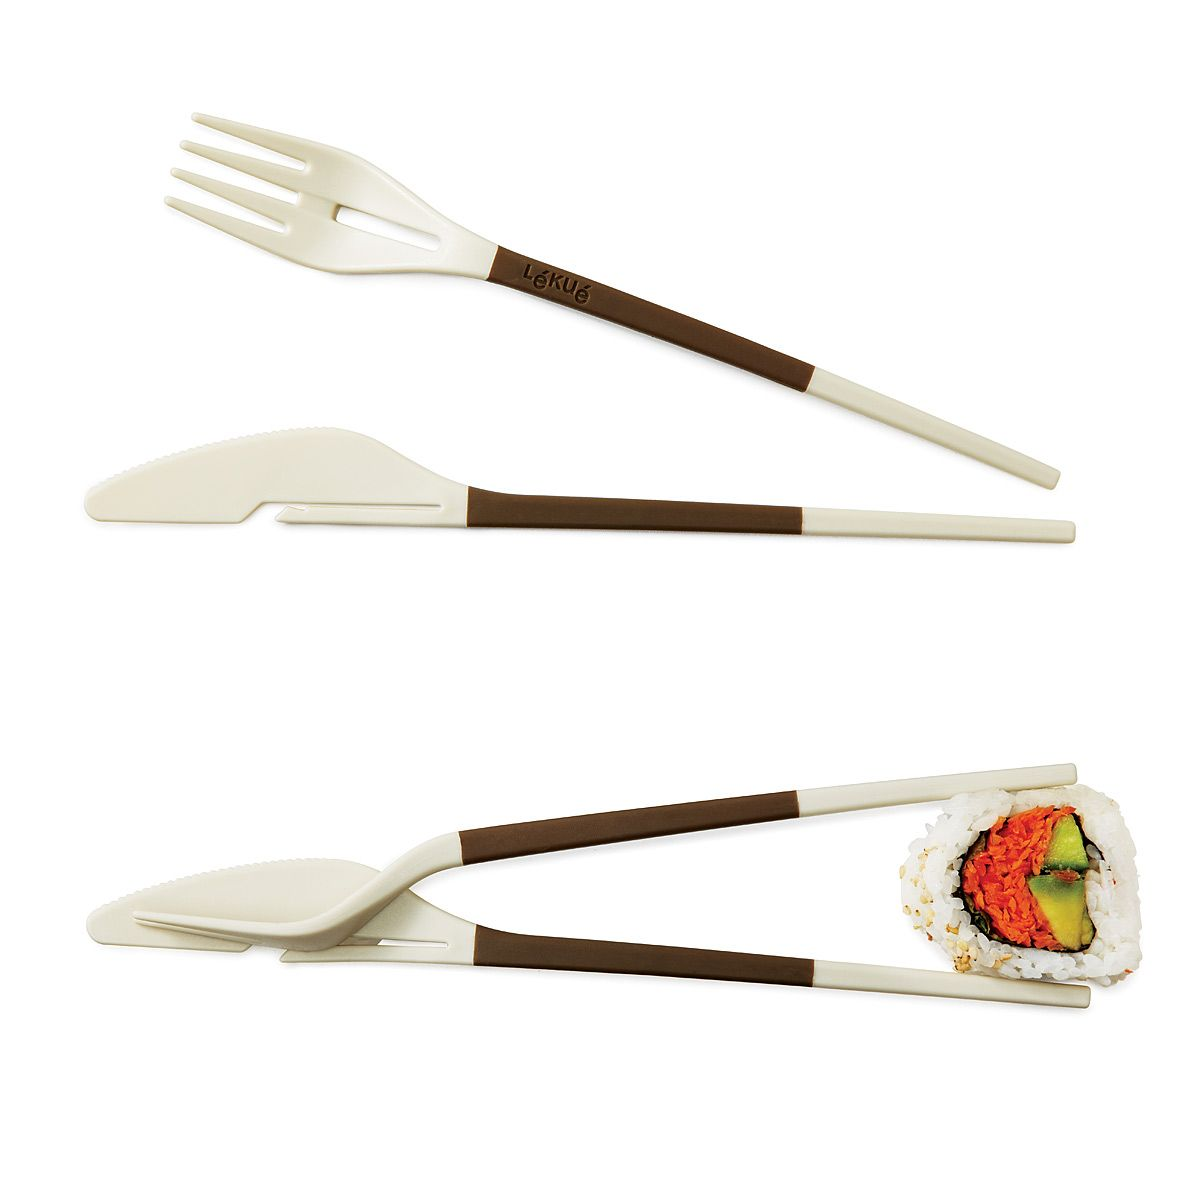 When it comes to Japanese food, you've got to come prepared. Here are some of our [favourite top chopsticks!